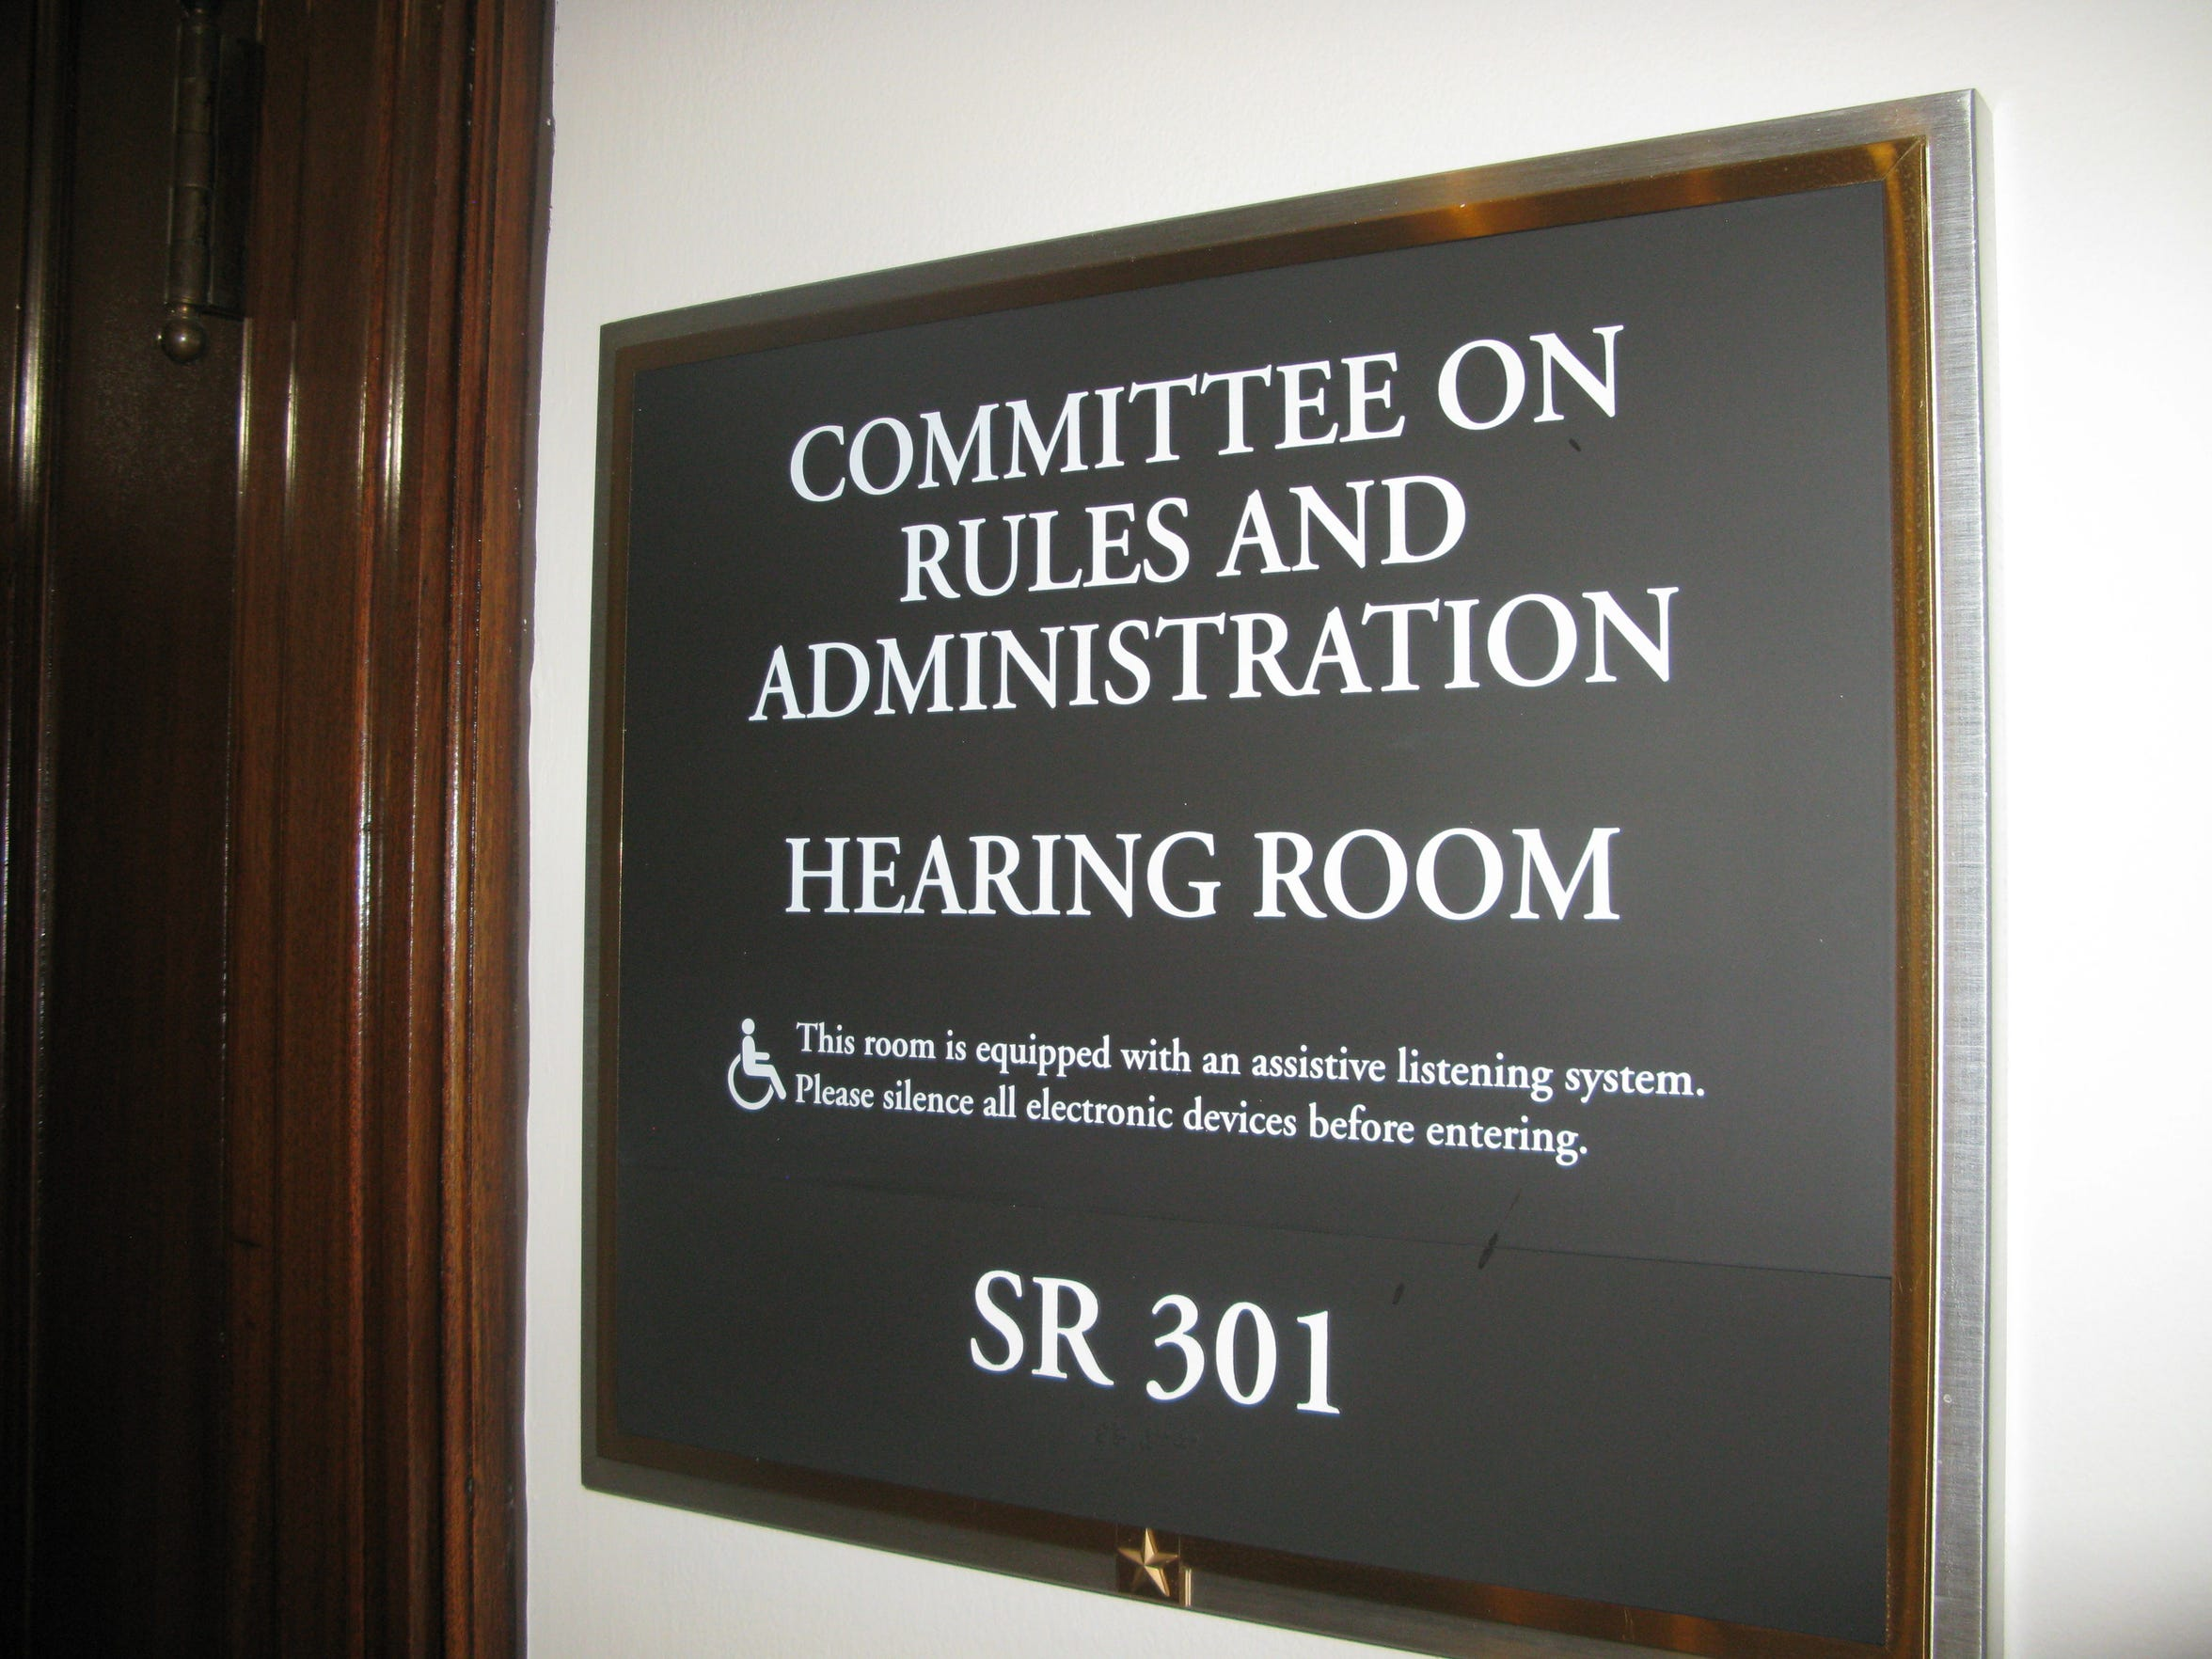 Roy Blunt took over the chairmanship of the Rules Committee